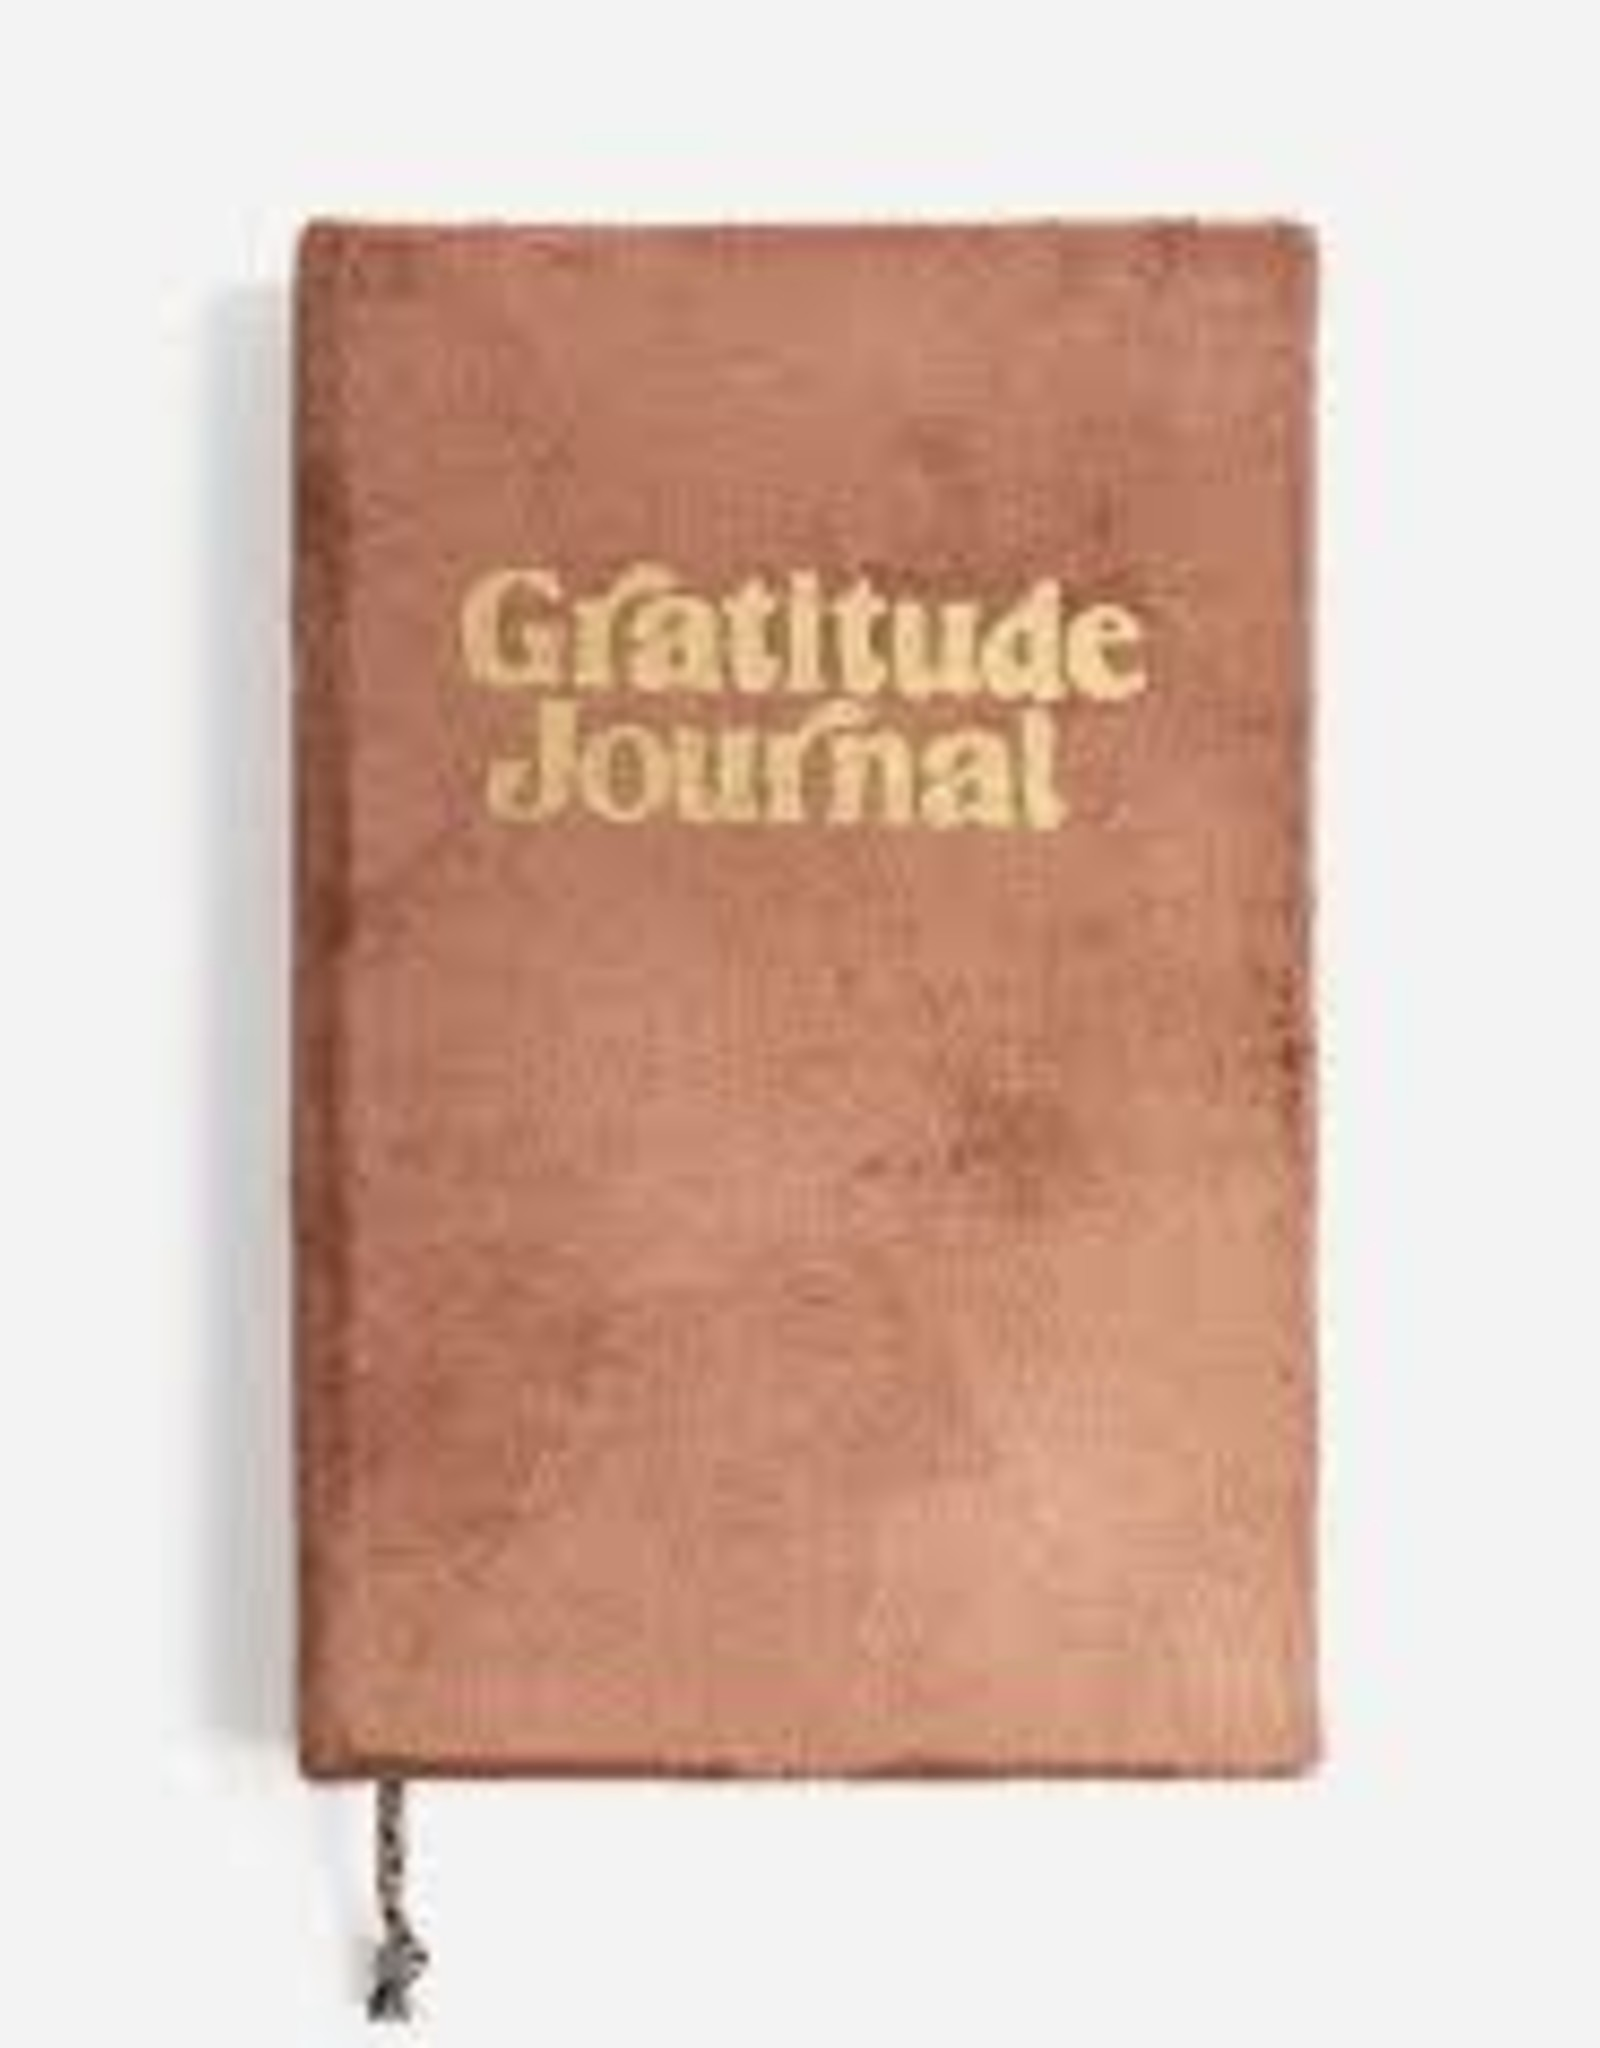 Printfresh Gratitude Journal Blush Pink Velvet